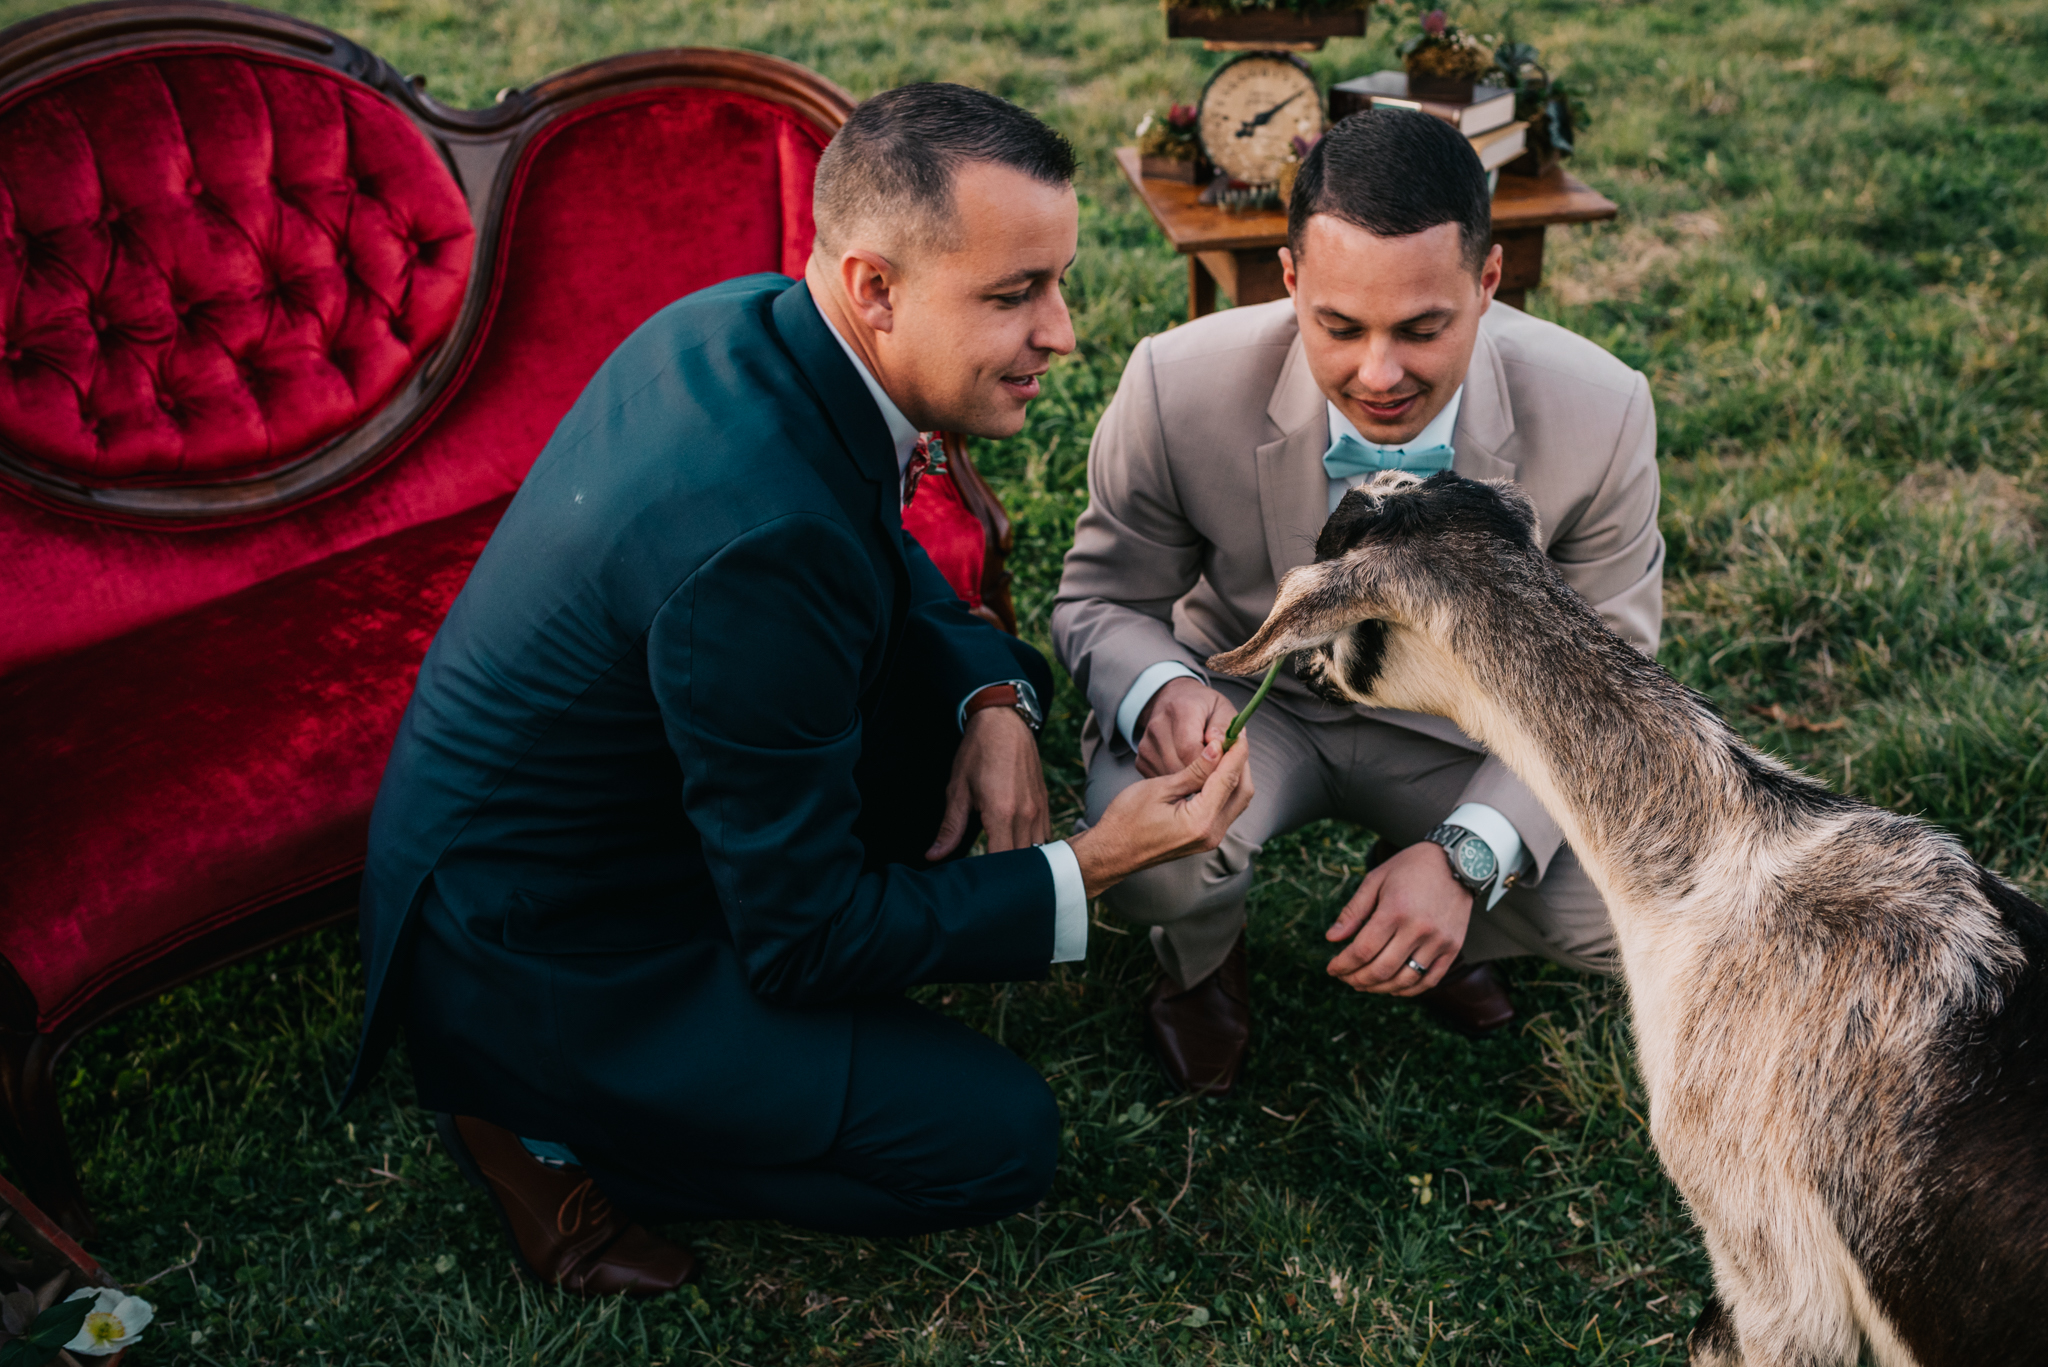 The grooms feed the goat by the red couch and rustic decor during the rustic farm styled engagement session with Rose Trail Images at Windy Hill Farm near Raleigh, NC.